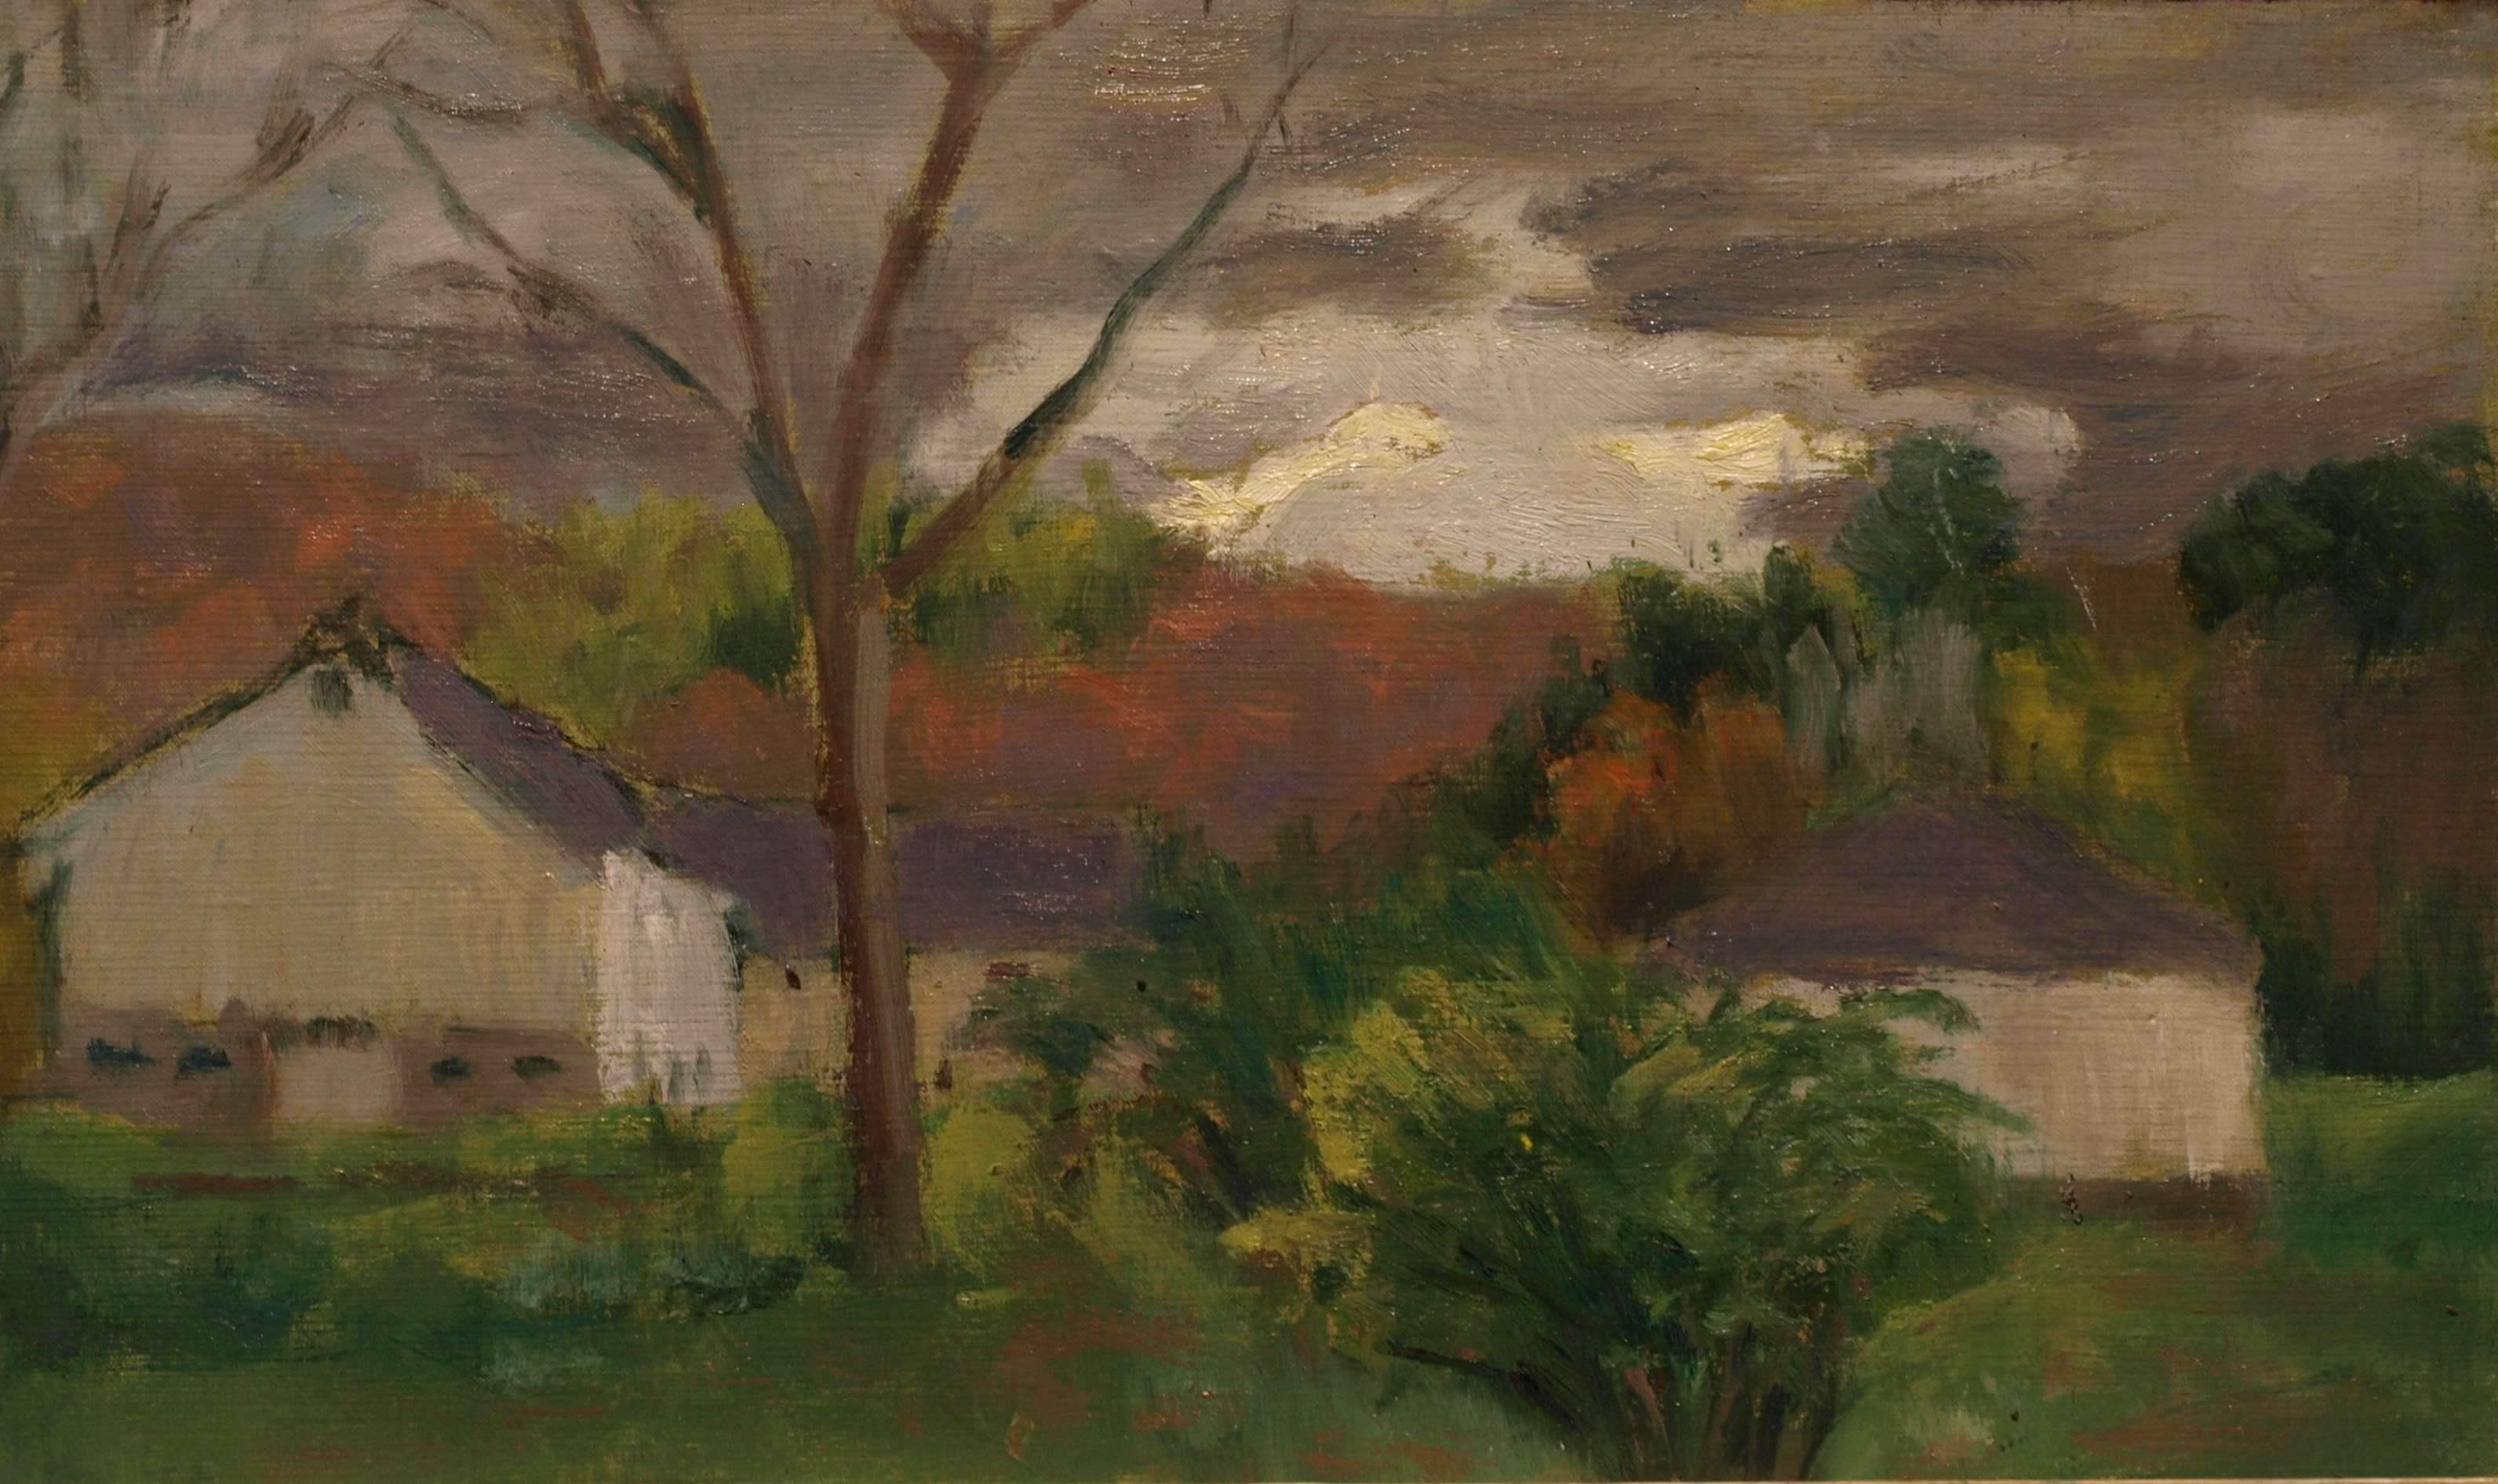 Storm Clouds, Oil on Canvas on Panel, 8 x 14 Inches, by Richard Stalter, $220